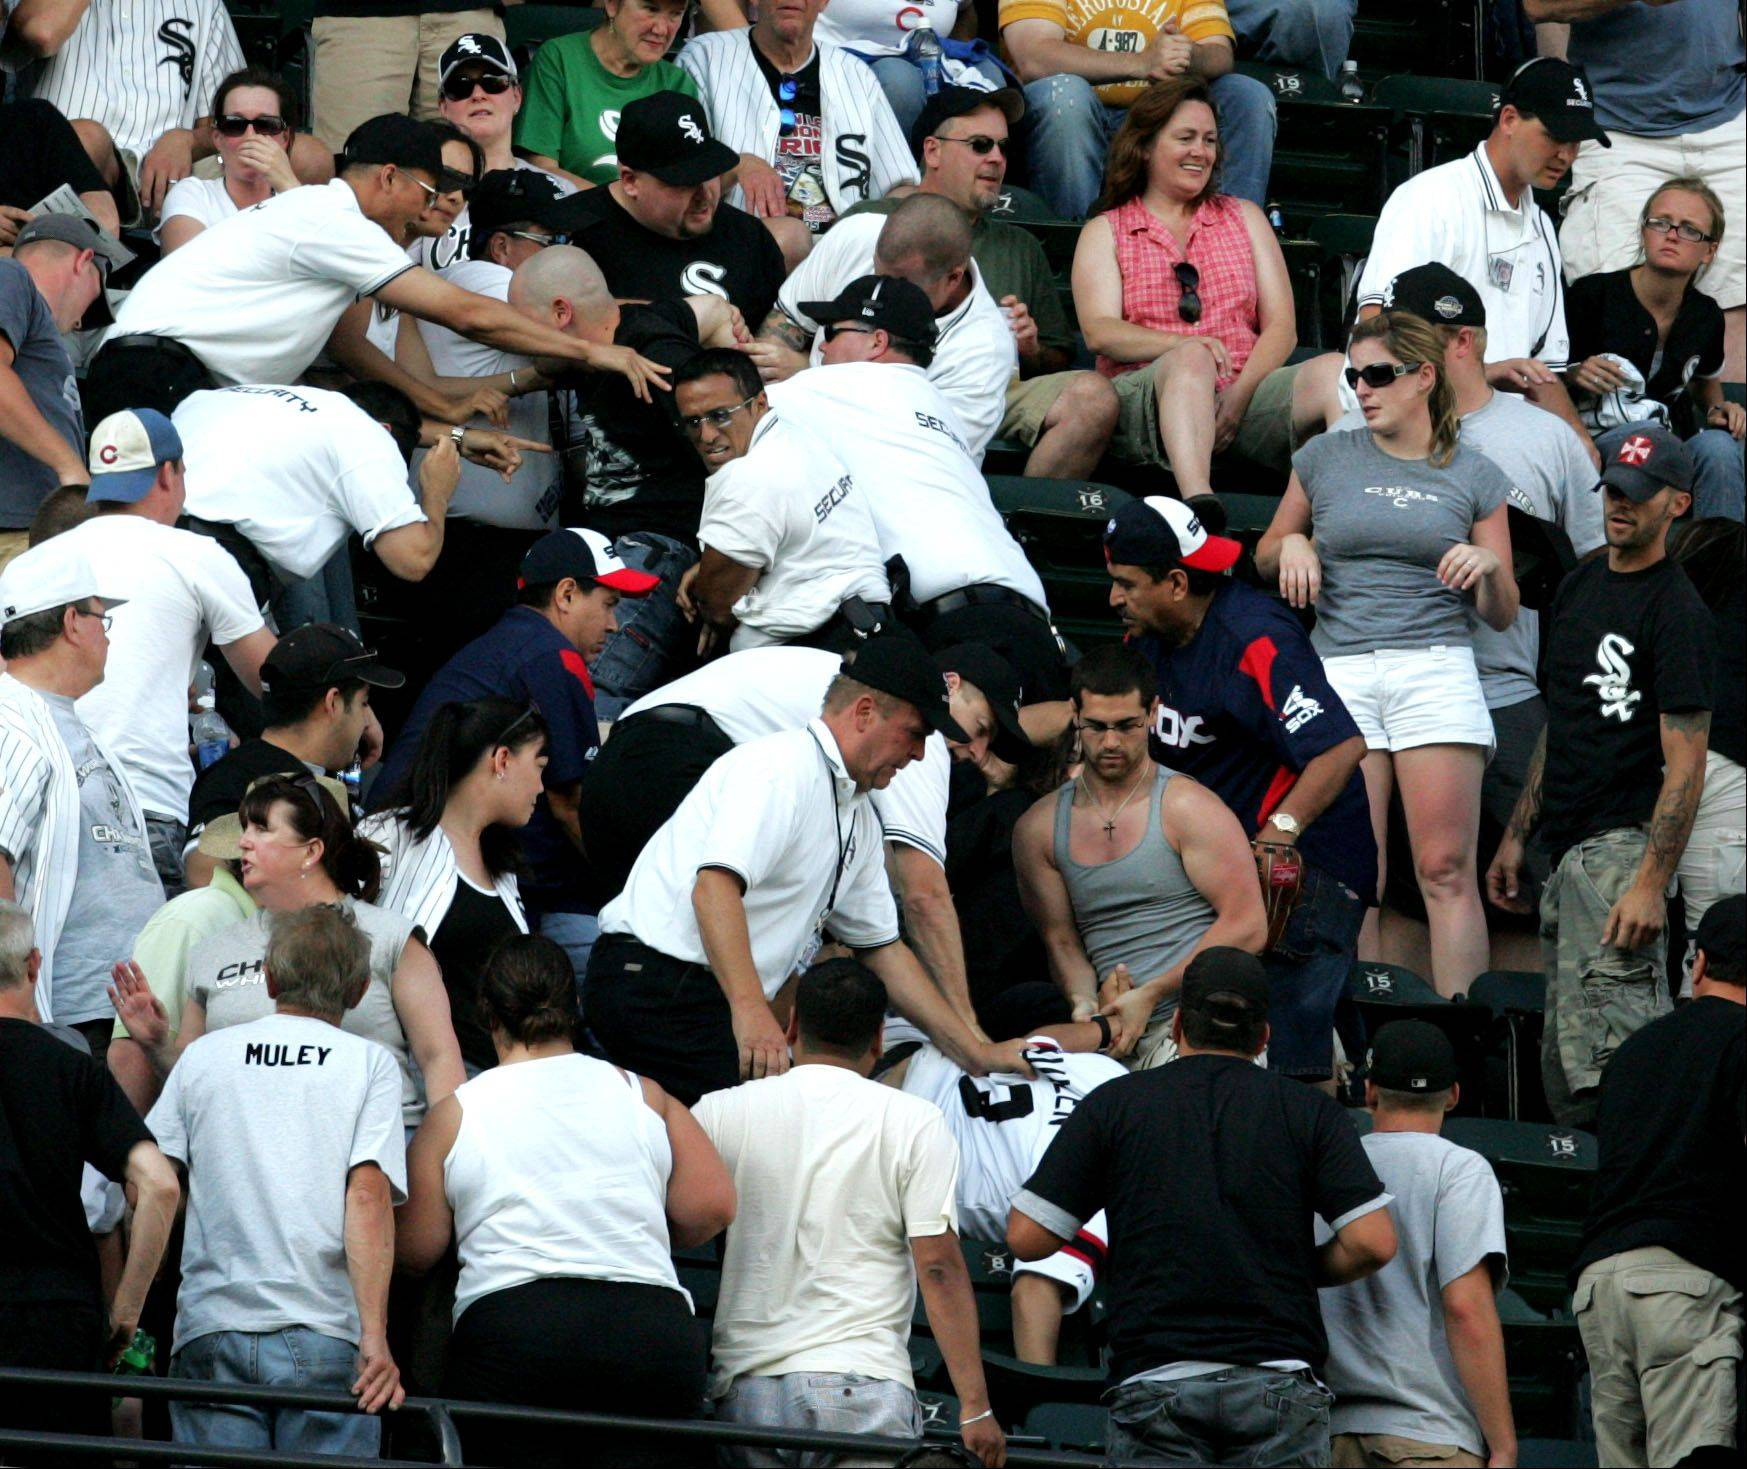 Fans in the stands and security at the Chicago White Sox win 8-7 against Cubs game at U.S. Cellular Field on Saturday June 27th.